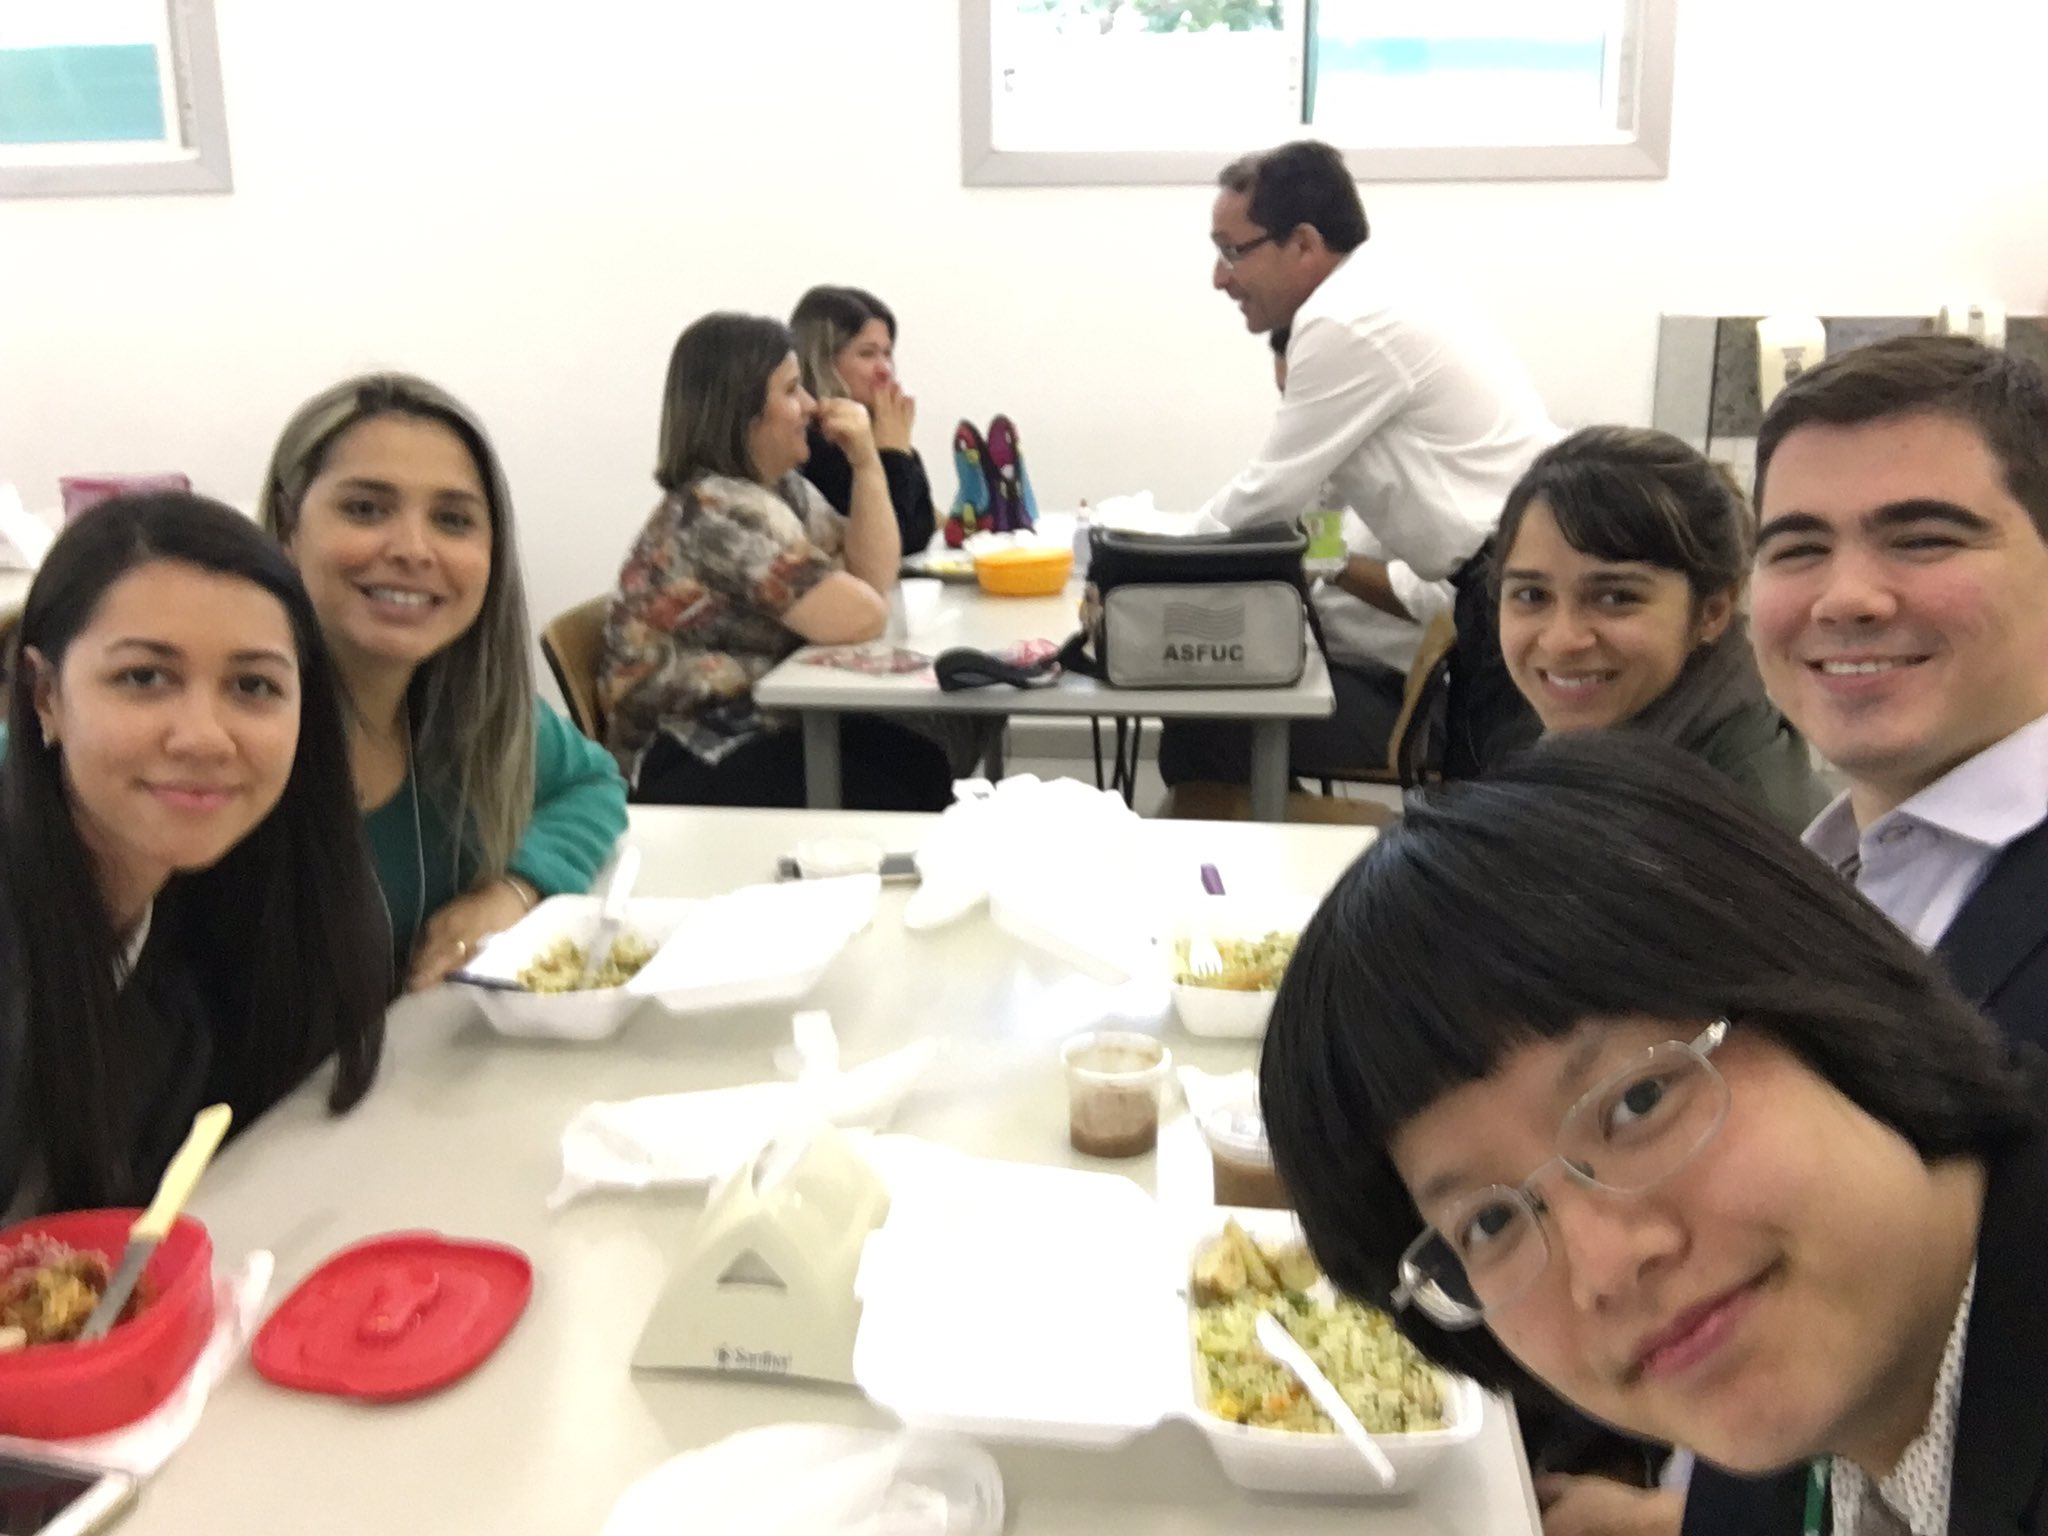 Lunch time with co-workers! Brazilian food is delicious:)#SummerGPS #TravelTuesday https://t.co/1pJz67El6v